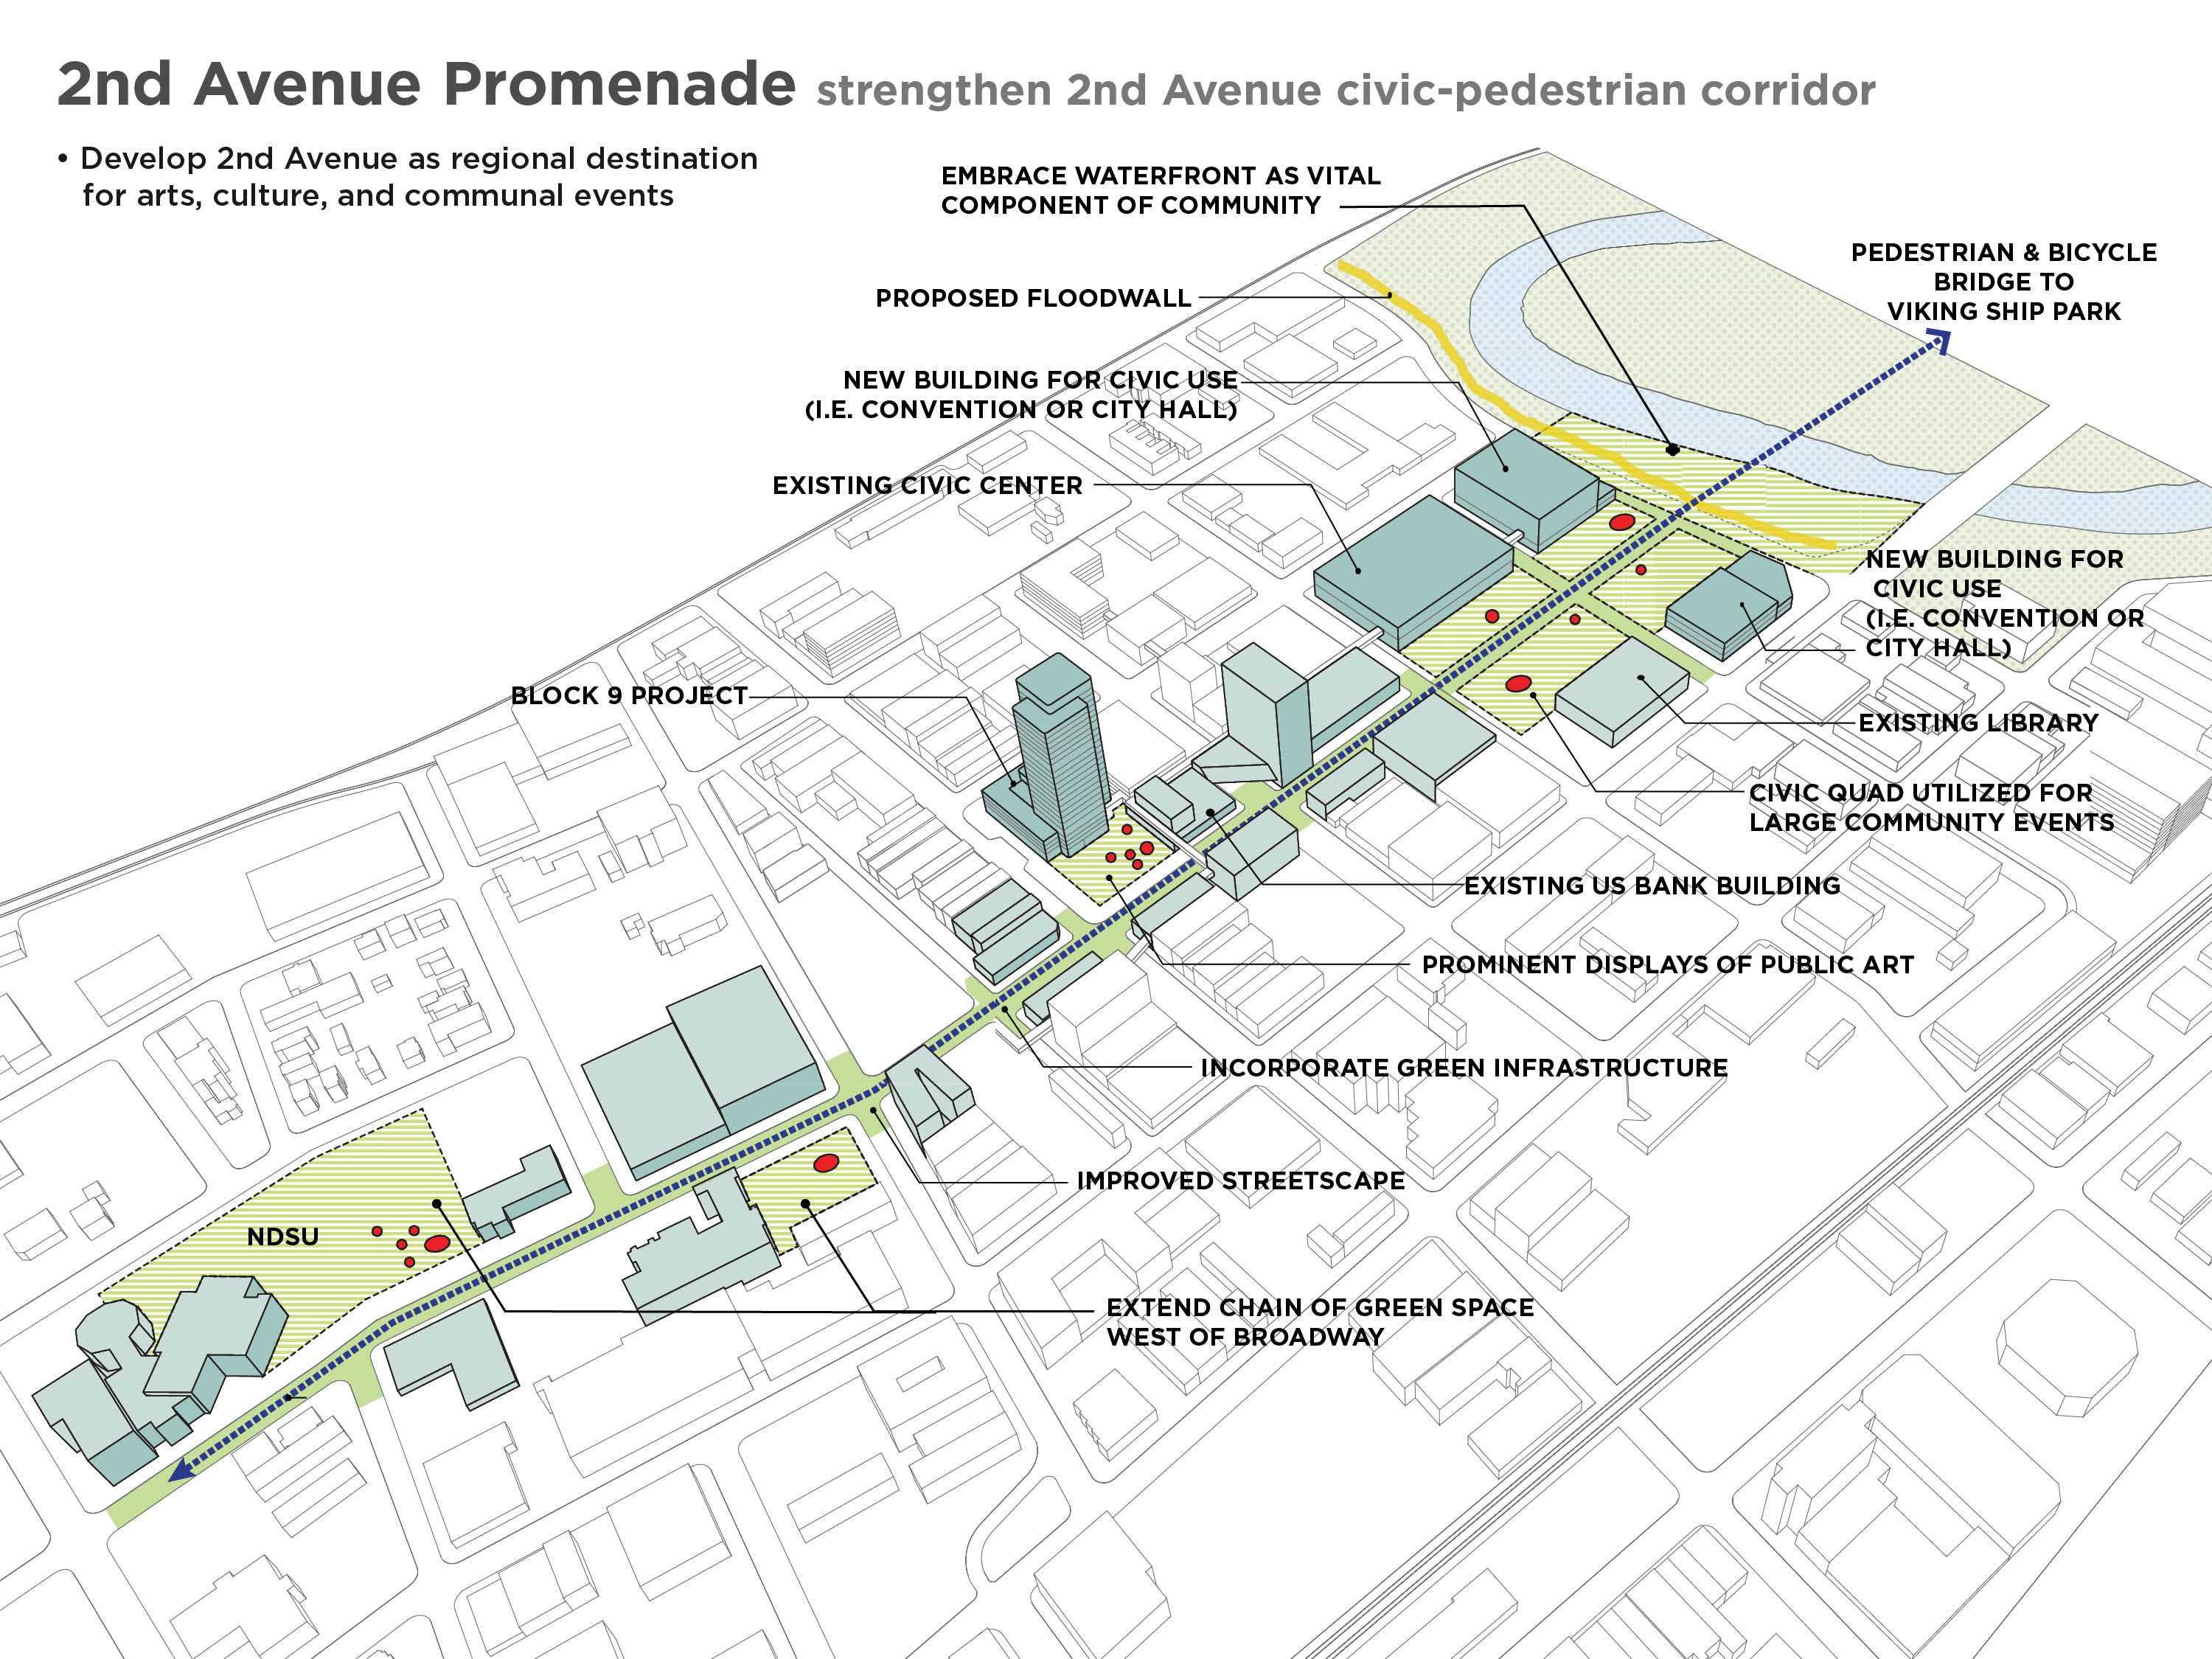 2nd ave flyover map